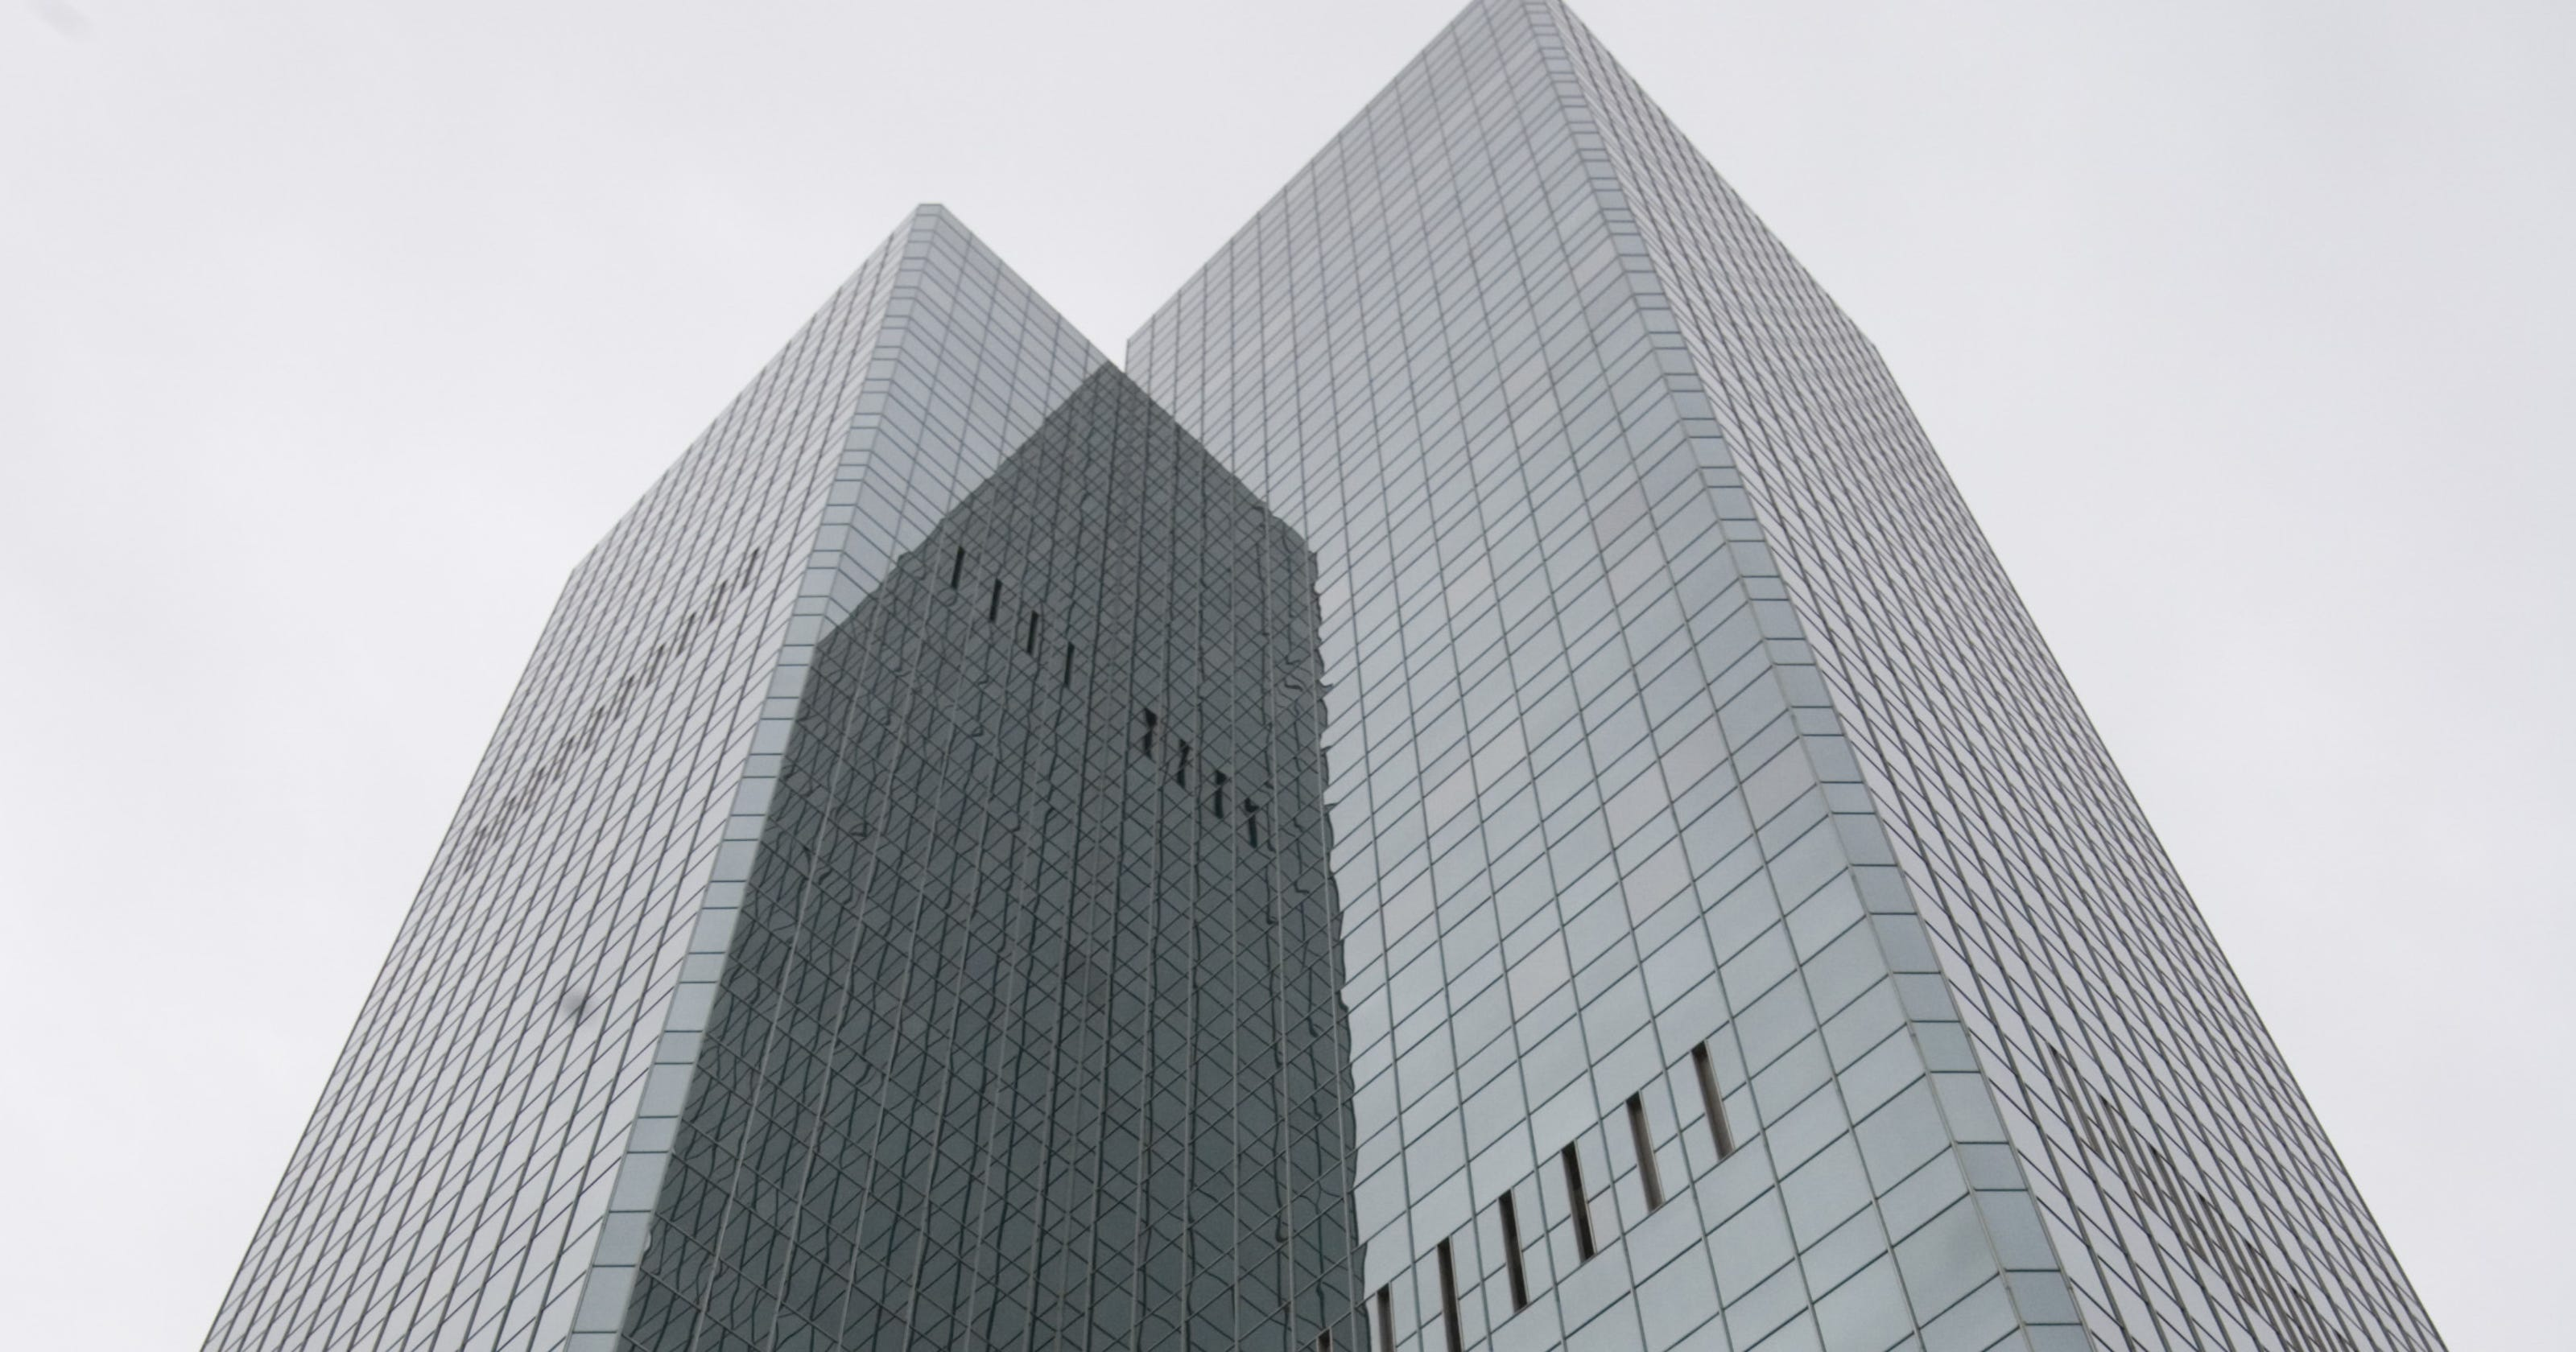 chase tower sells in foreclosure deal for 79 million